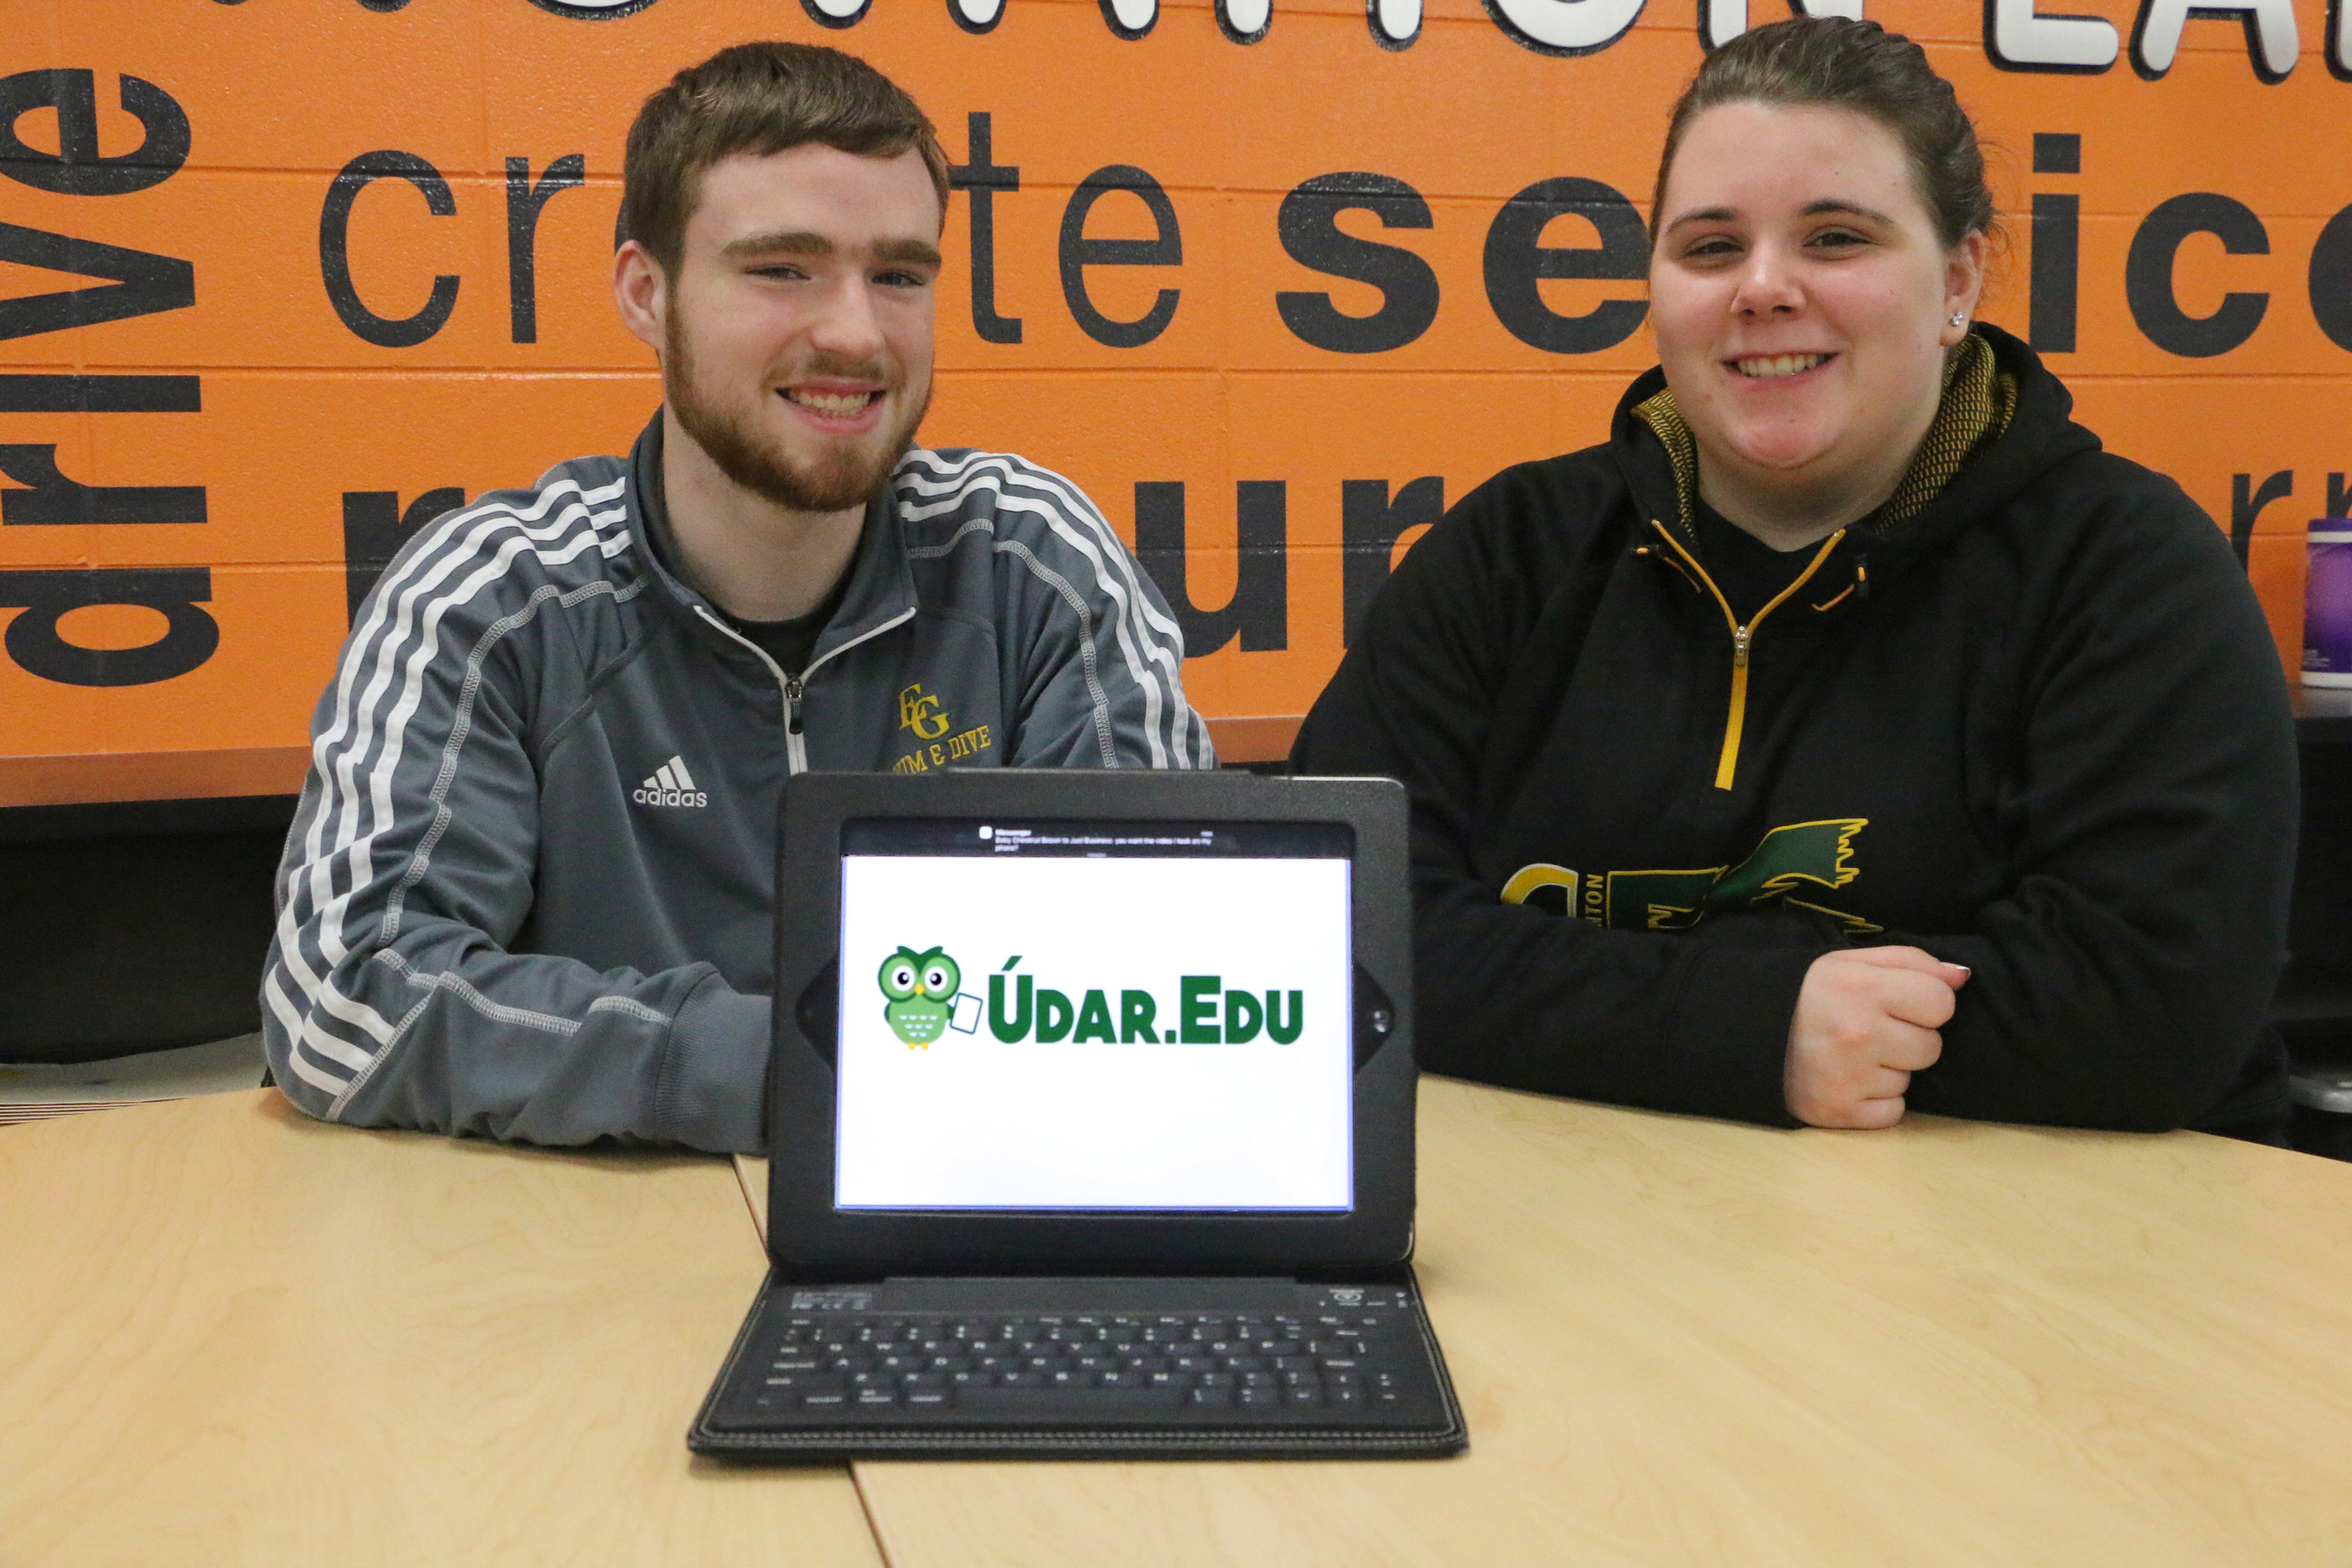 Elk Grove High School seniors Sean Duffy and Wendy Rosenquist and their app, Údar.